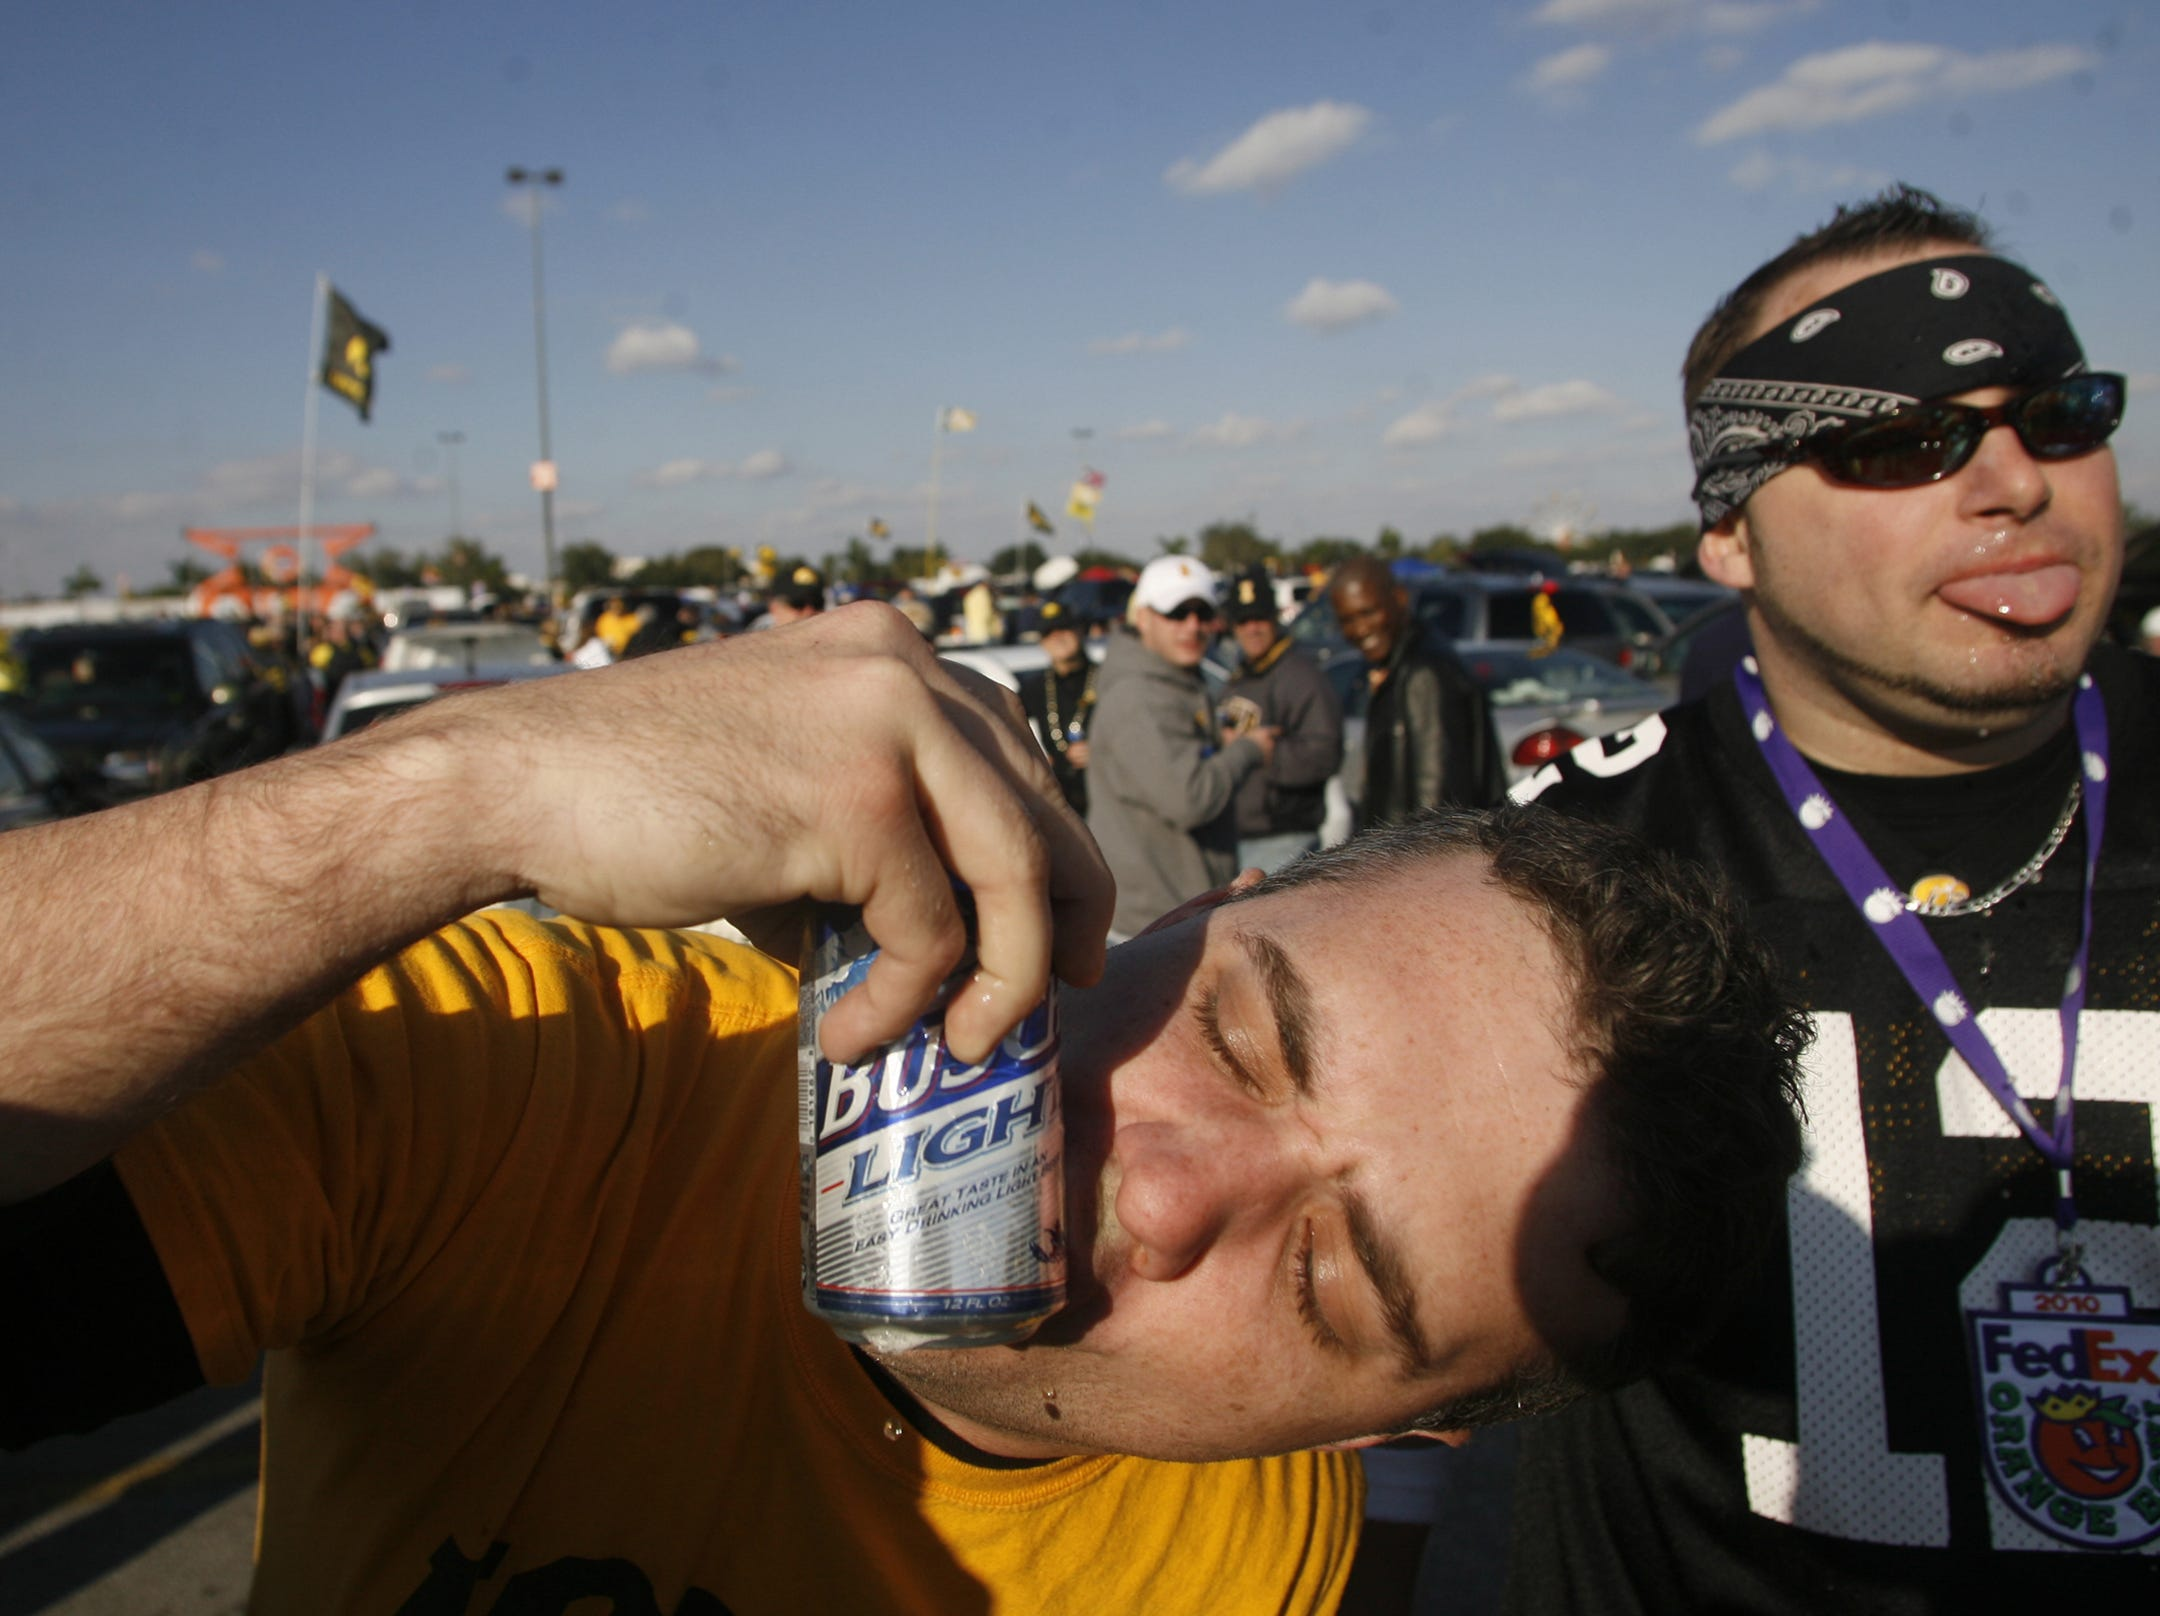 Scott Green, of Fort Lauderdale, and Jason Jefferies, of LaPorte City, Iowa, right, shotgun beers while tailgating before the start of the Orange Bowl, Tuesday, Jan. 5, 2010, at LandShark Stadium, in Miami Gardens, Fl.